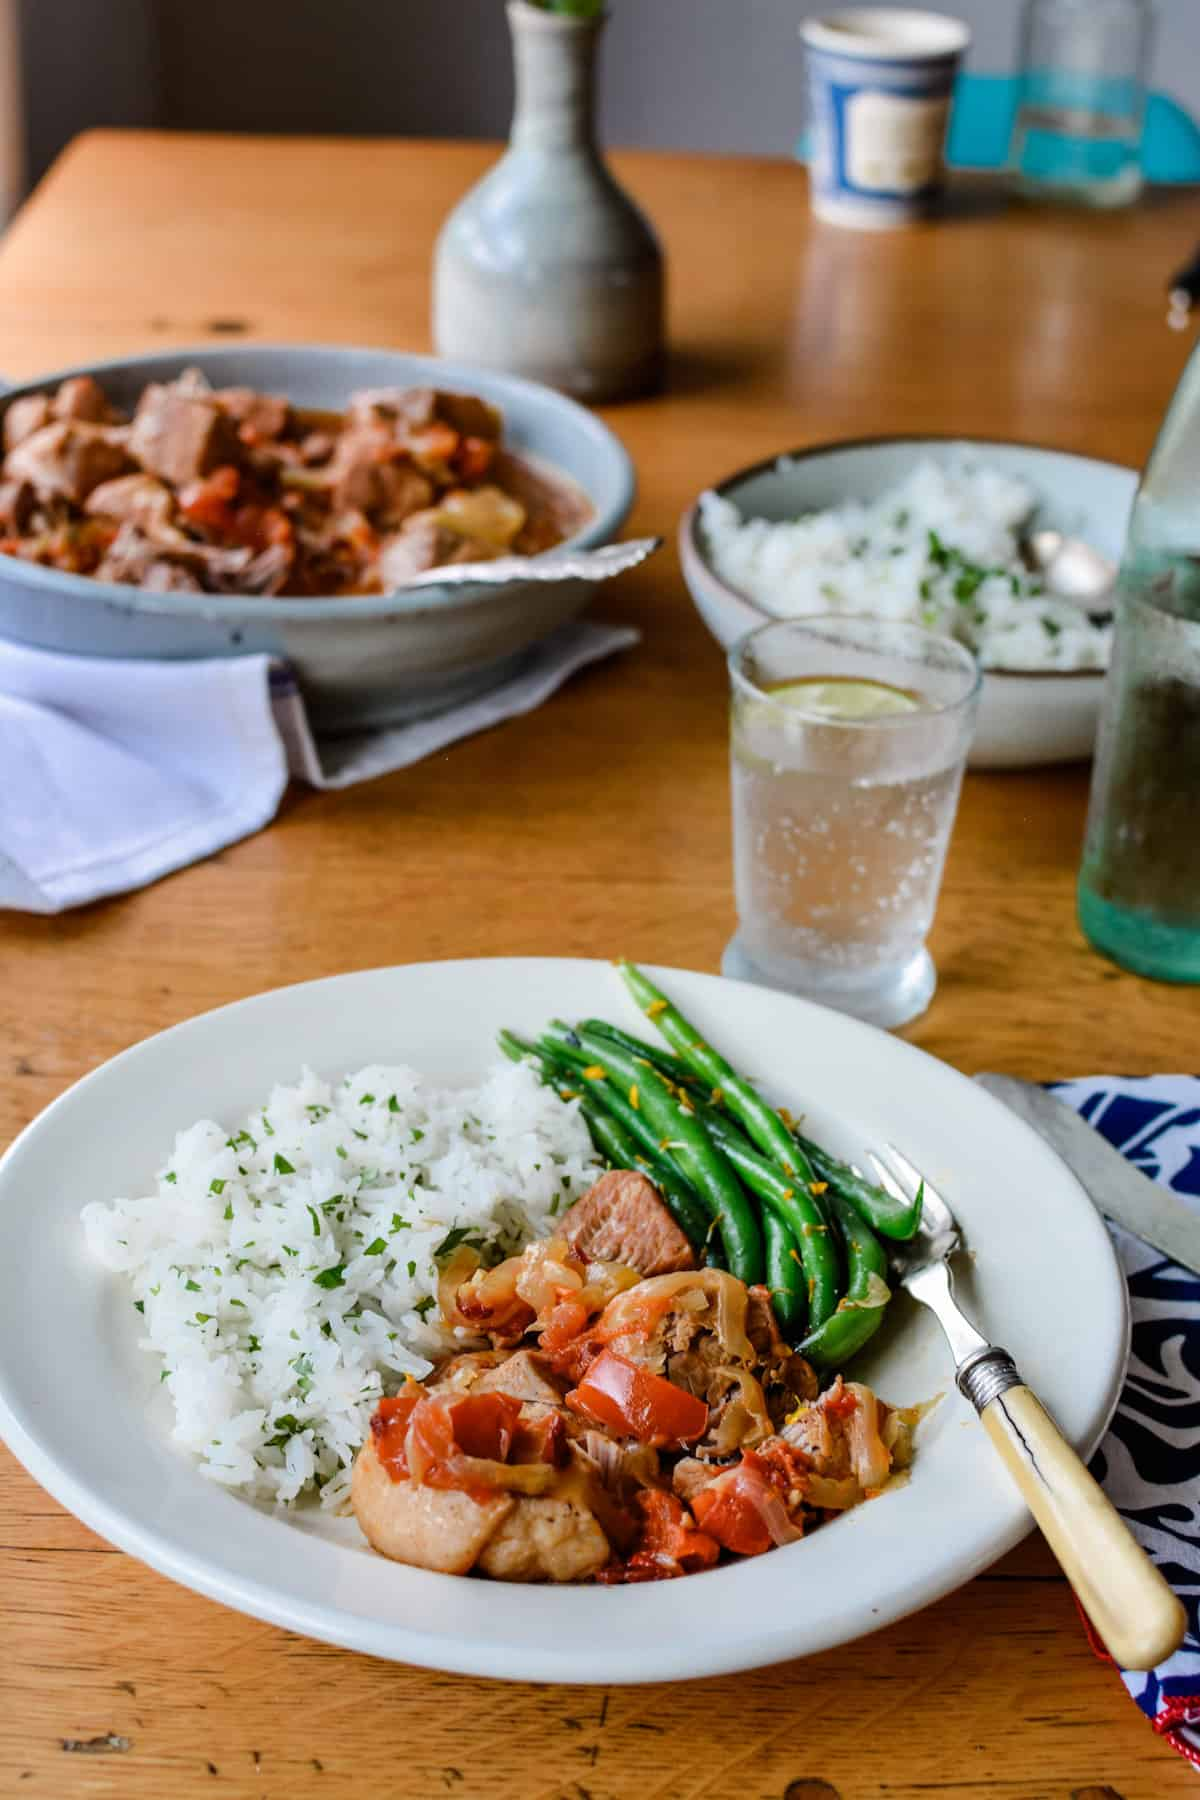 A plate of pork Tinga, white rice, and green beans sitting on a wood table with a fork on the plate, a blue and white napkin beside the plate.